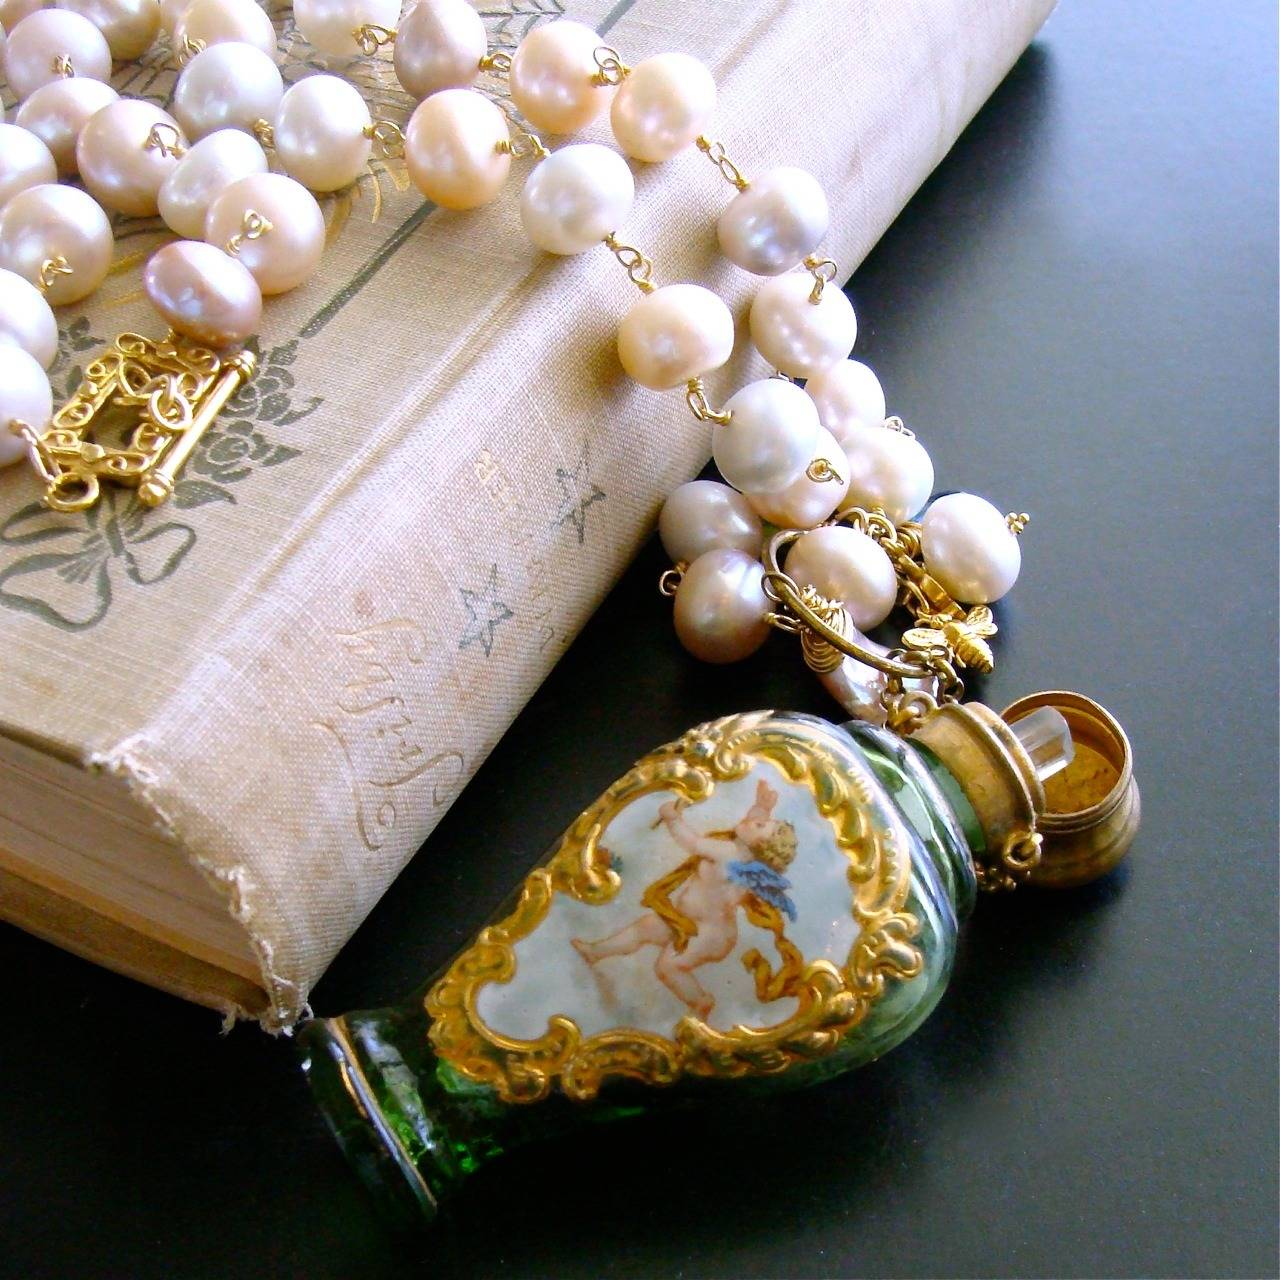 Cherub Chatelaine Scent Bottle Pink Baroque Pearls Necklace 7